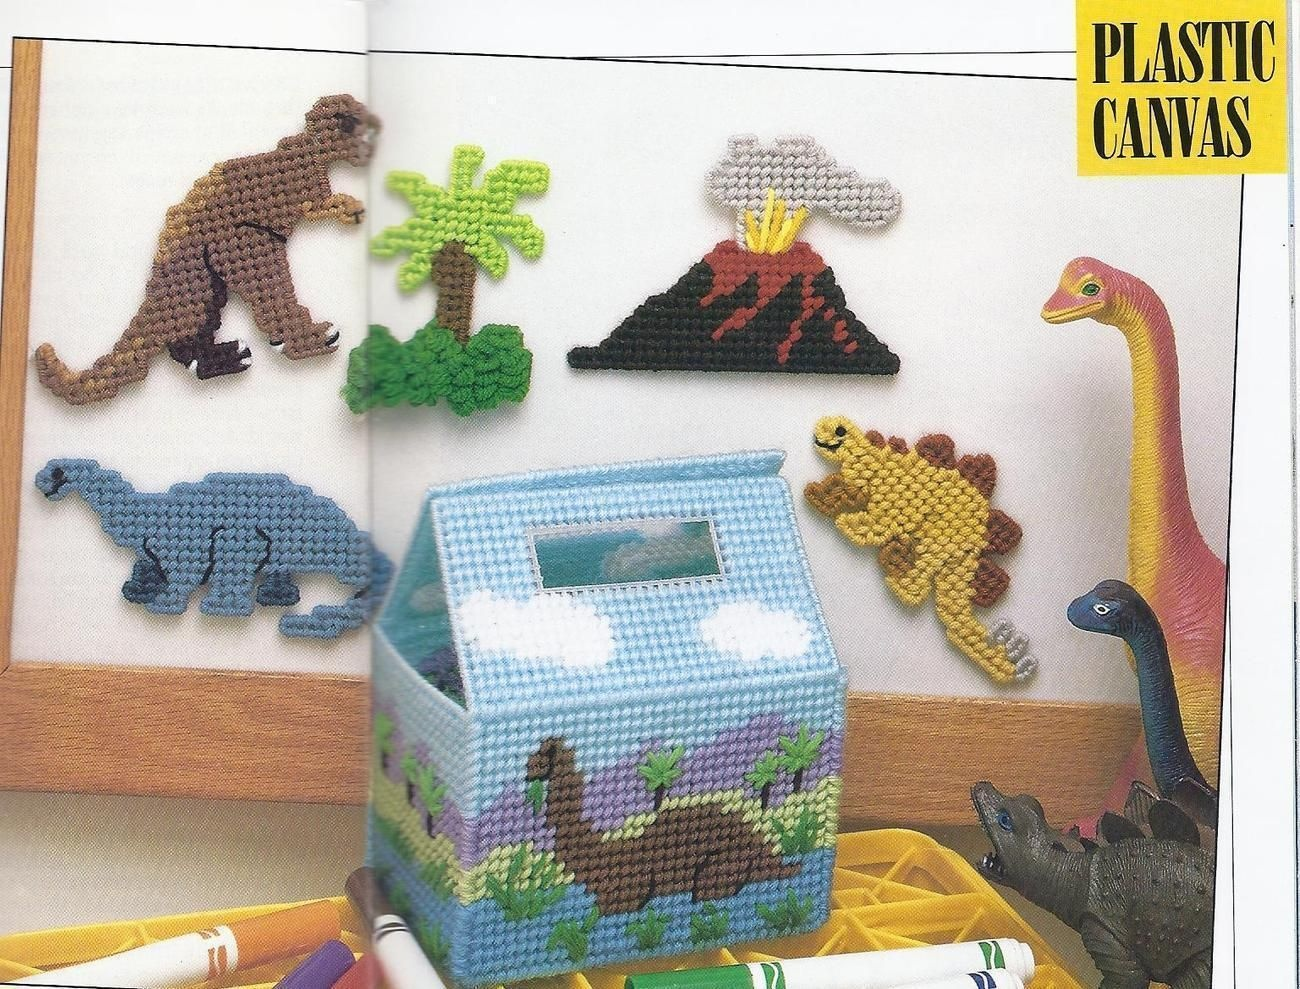 Plastic Canvas Free Patterns With | Free Online Plastic Canvas - Printable Plastic Canvas Patterns Free Online